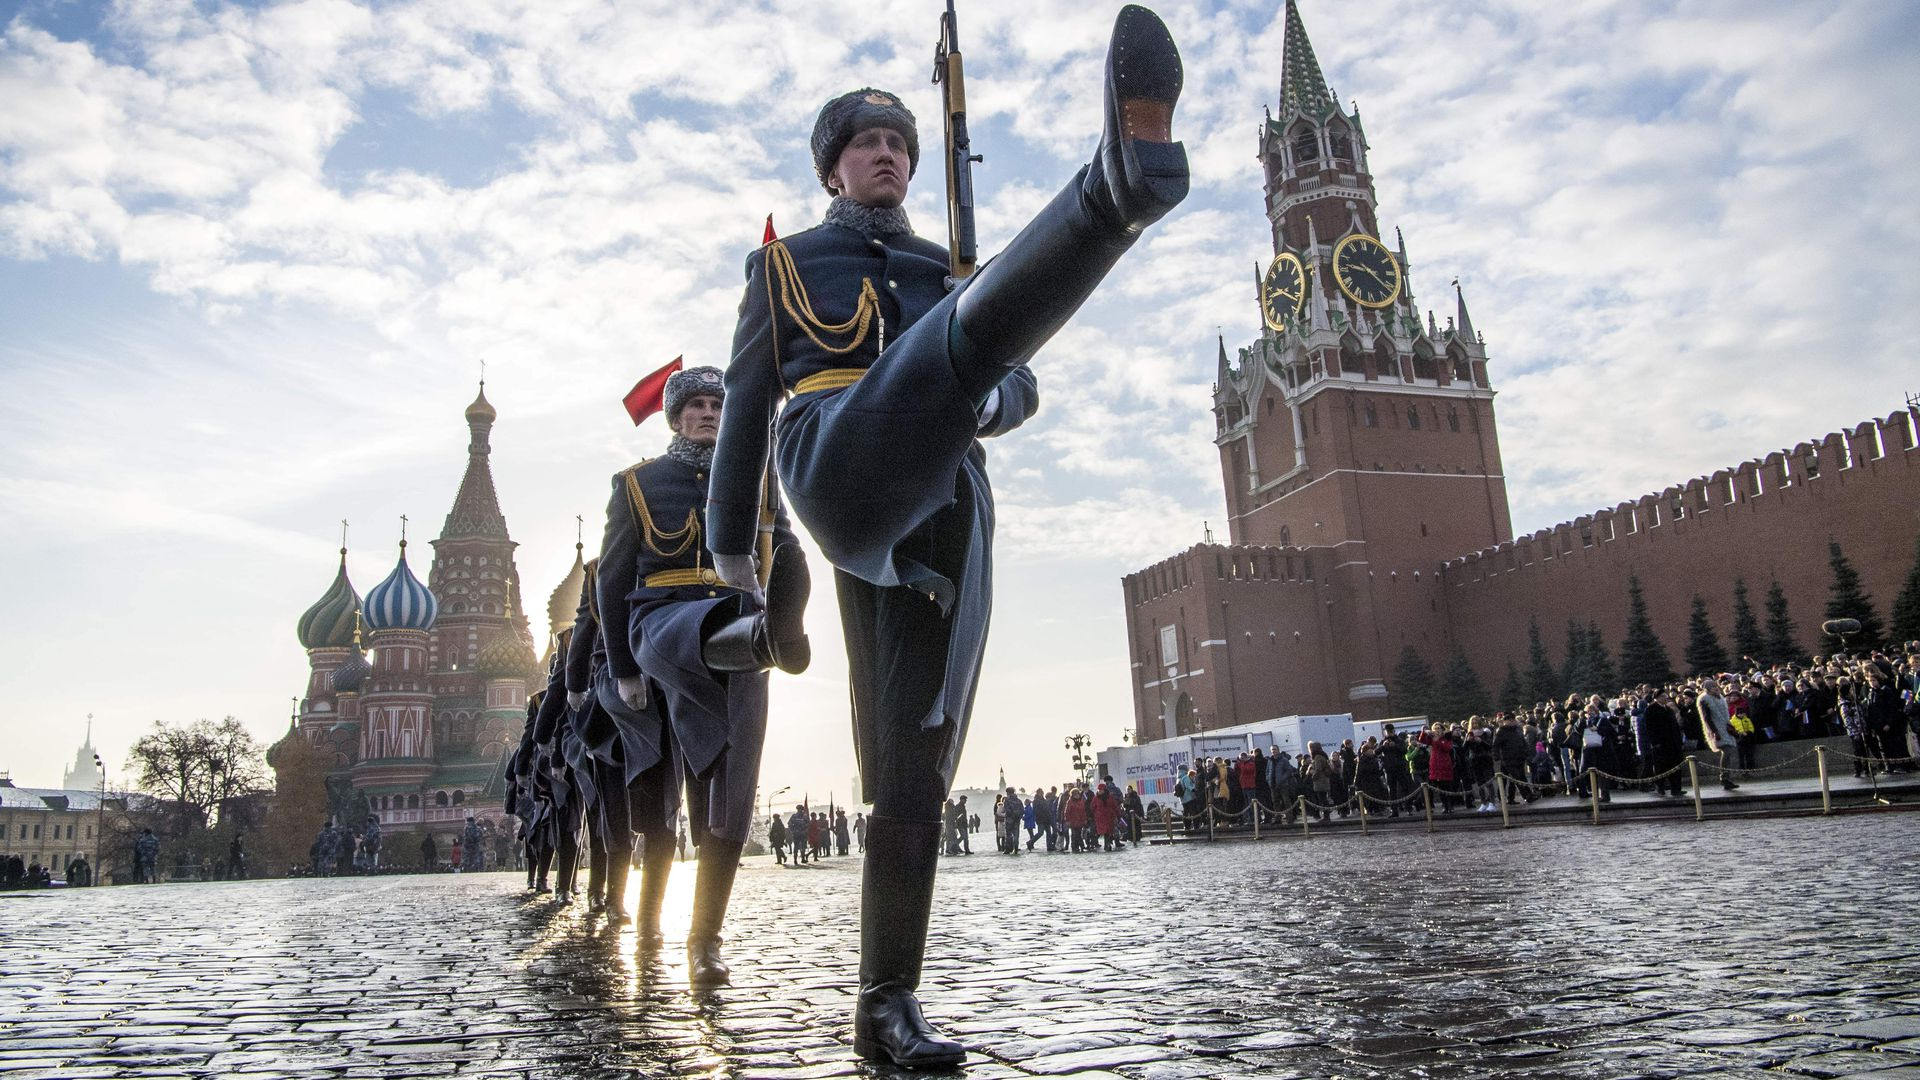 Russian honour guards march during the military parade at Red Square in Moscow